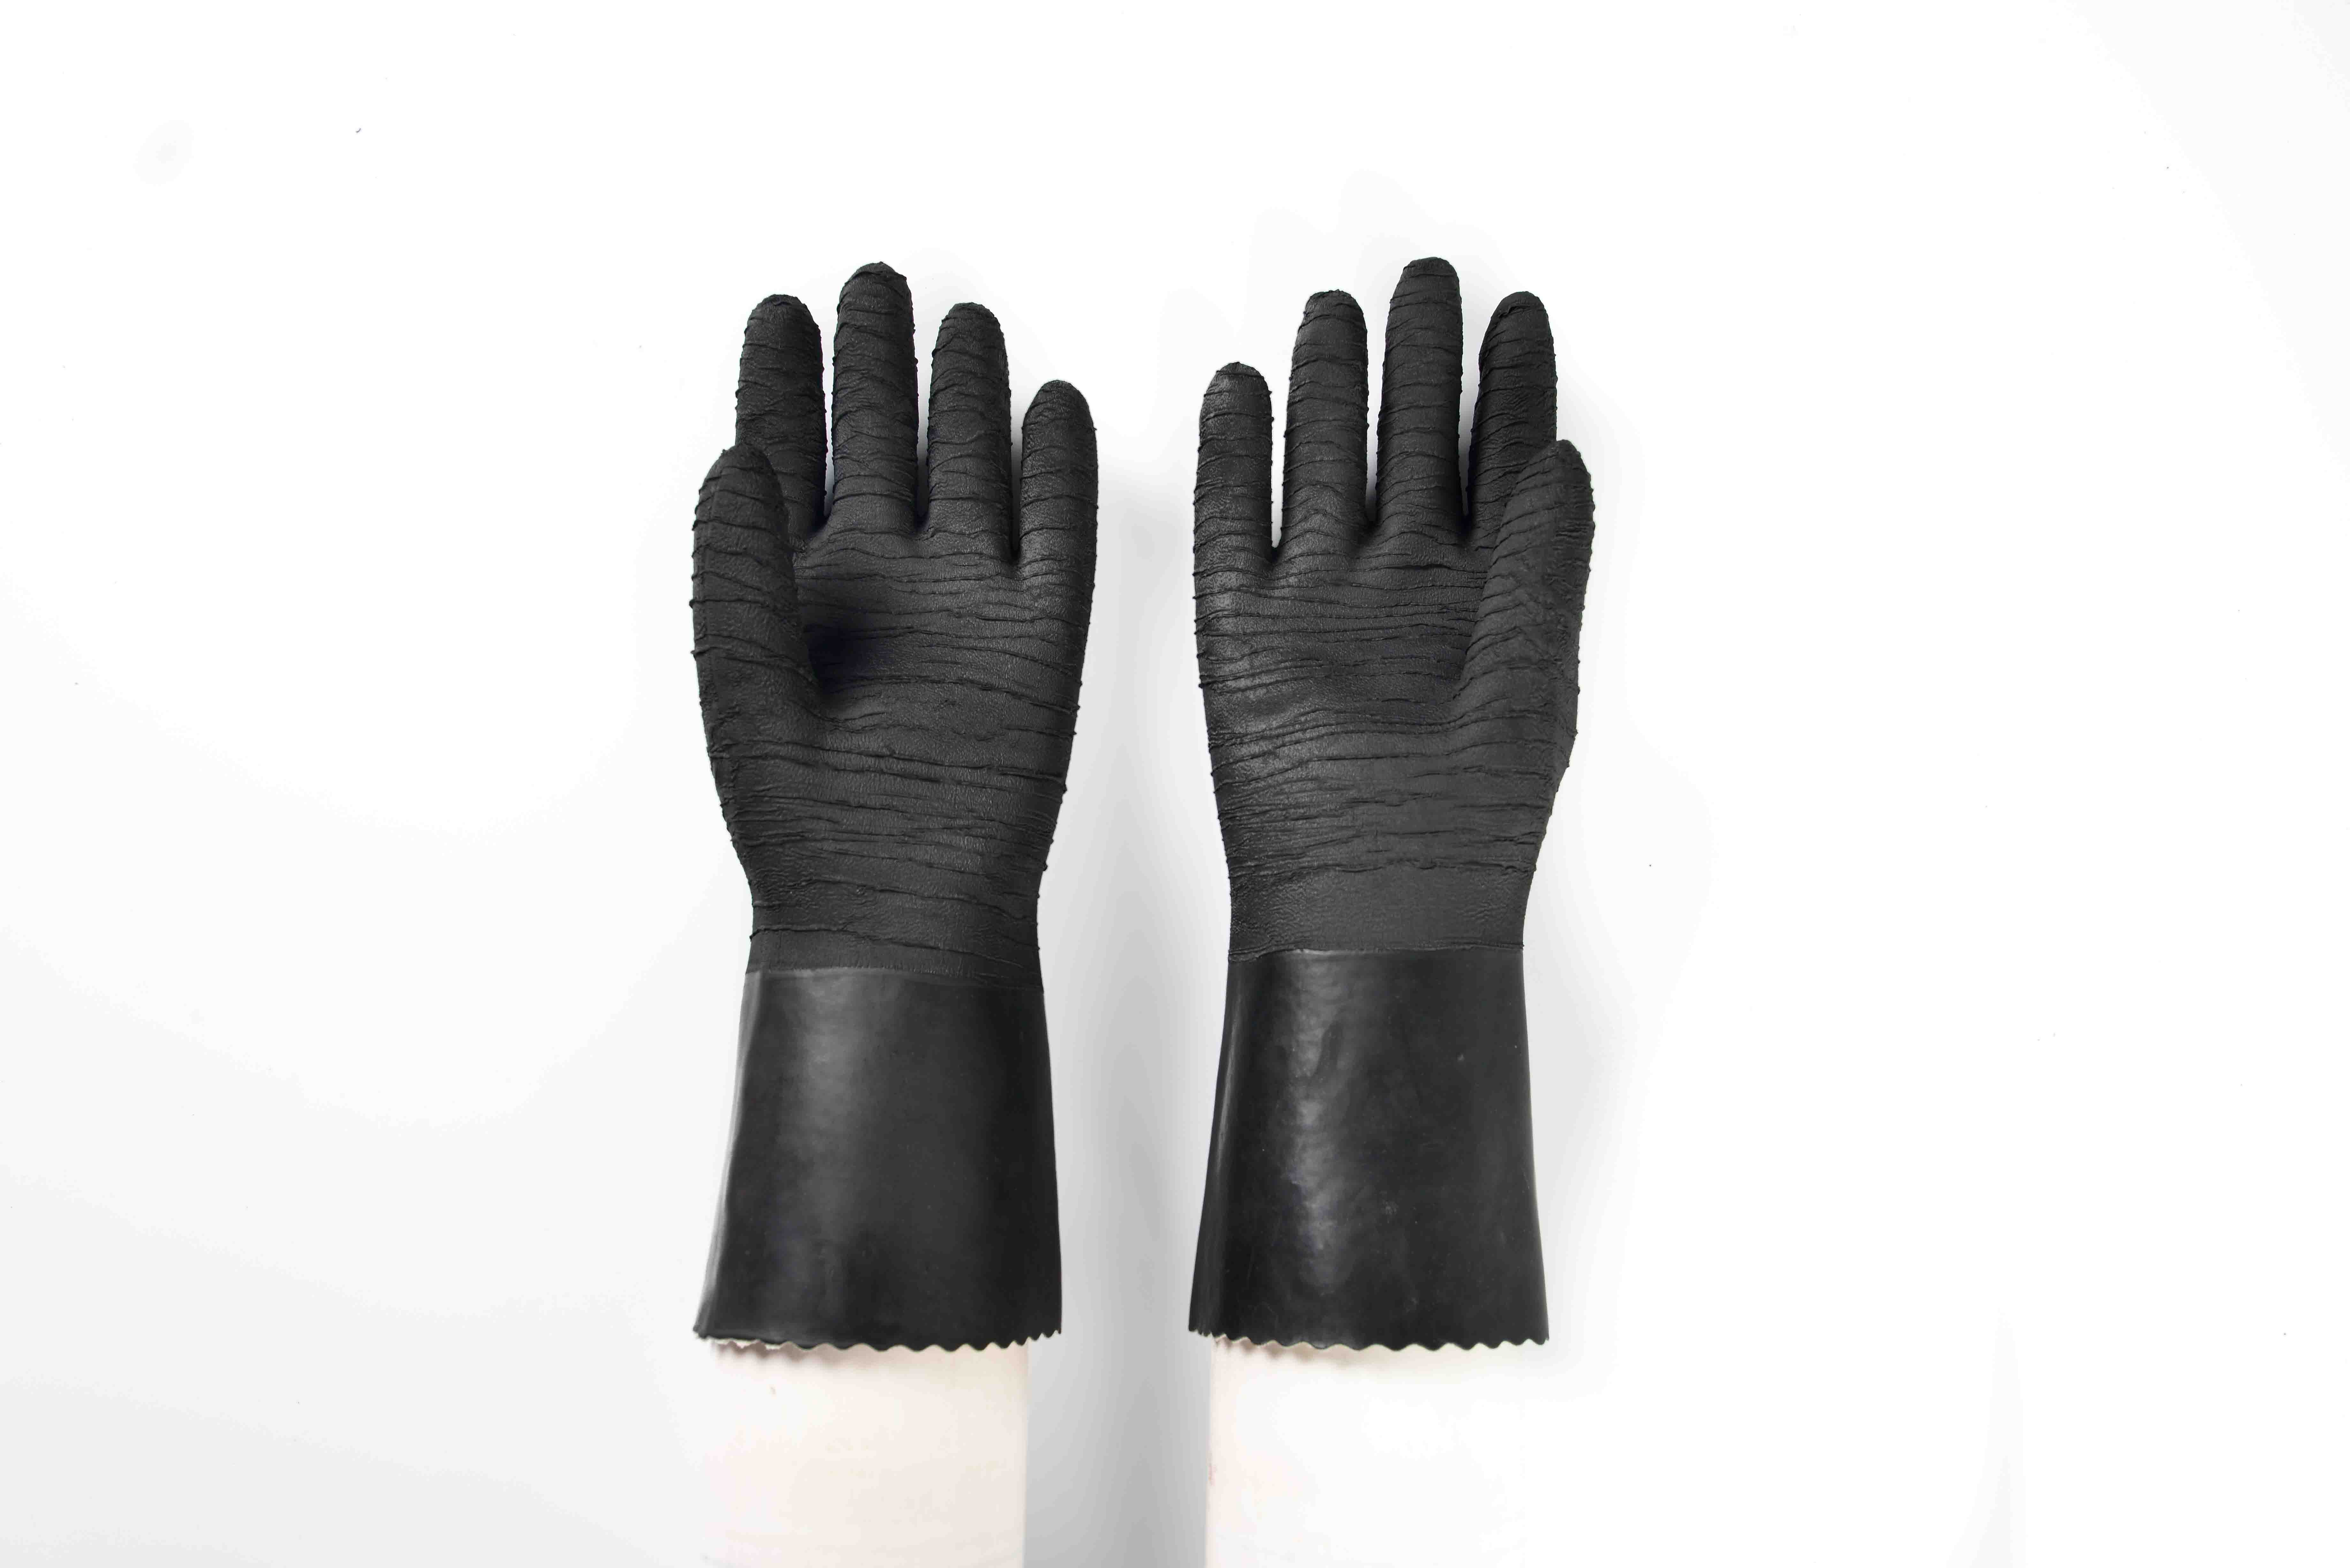 Low price for 12″ rubber glove with cotton linning-rough finish supply for Birmsupply forgham